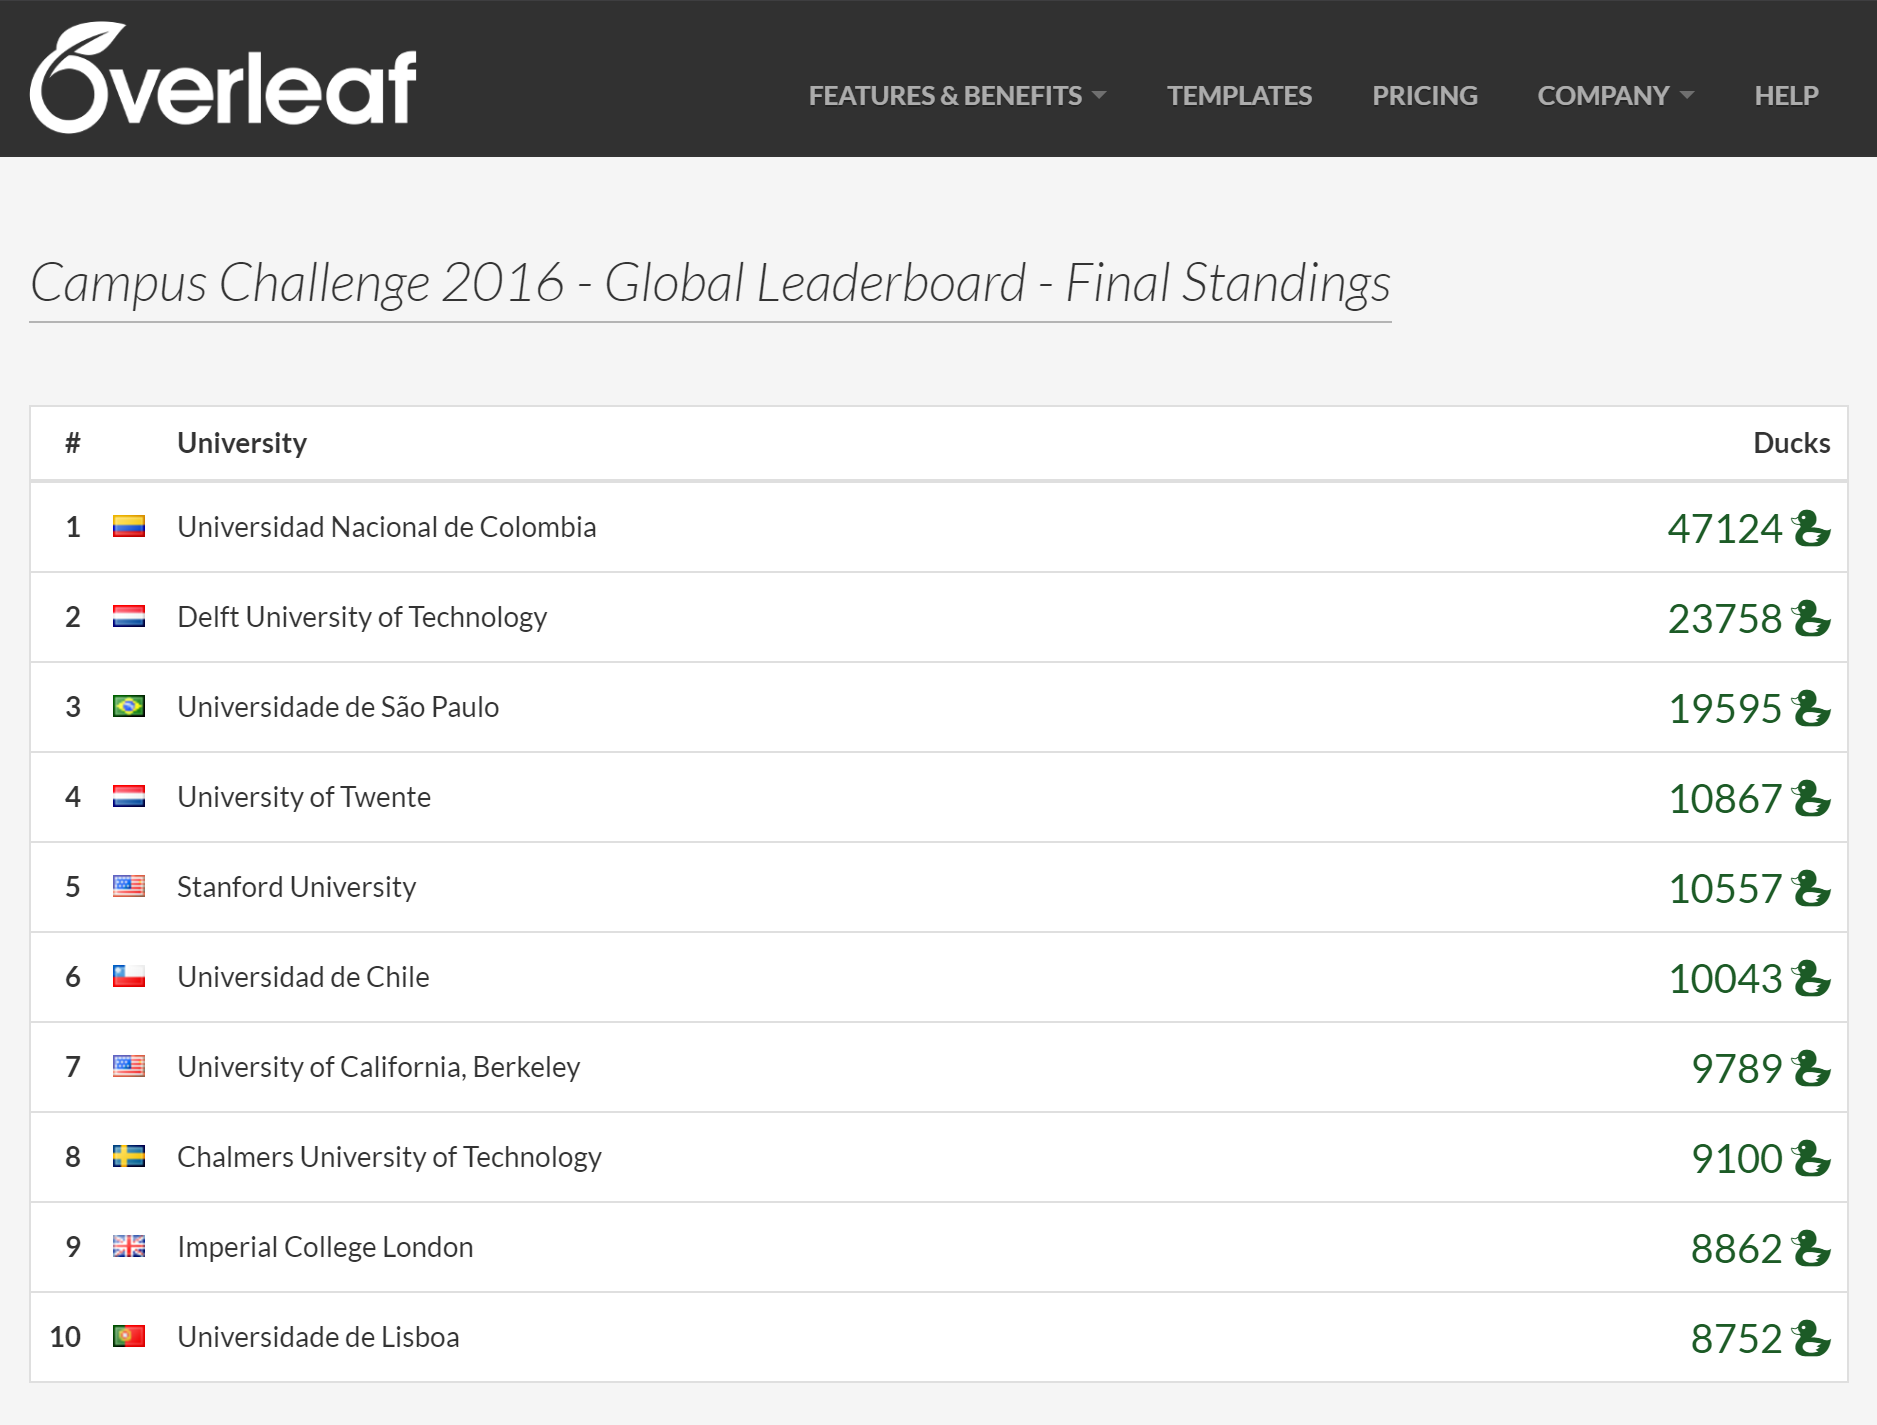 Overleaf Campus Challenge Final Global Leaderboard